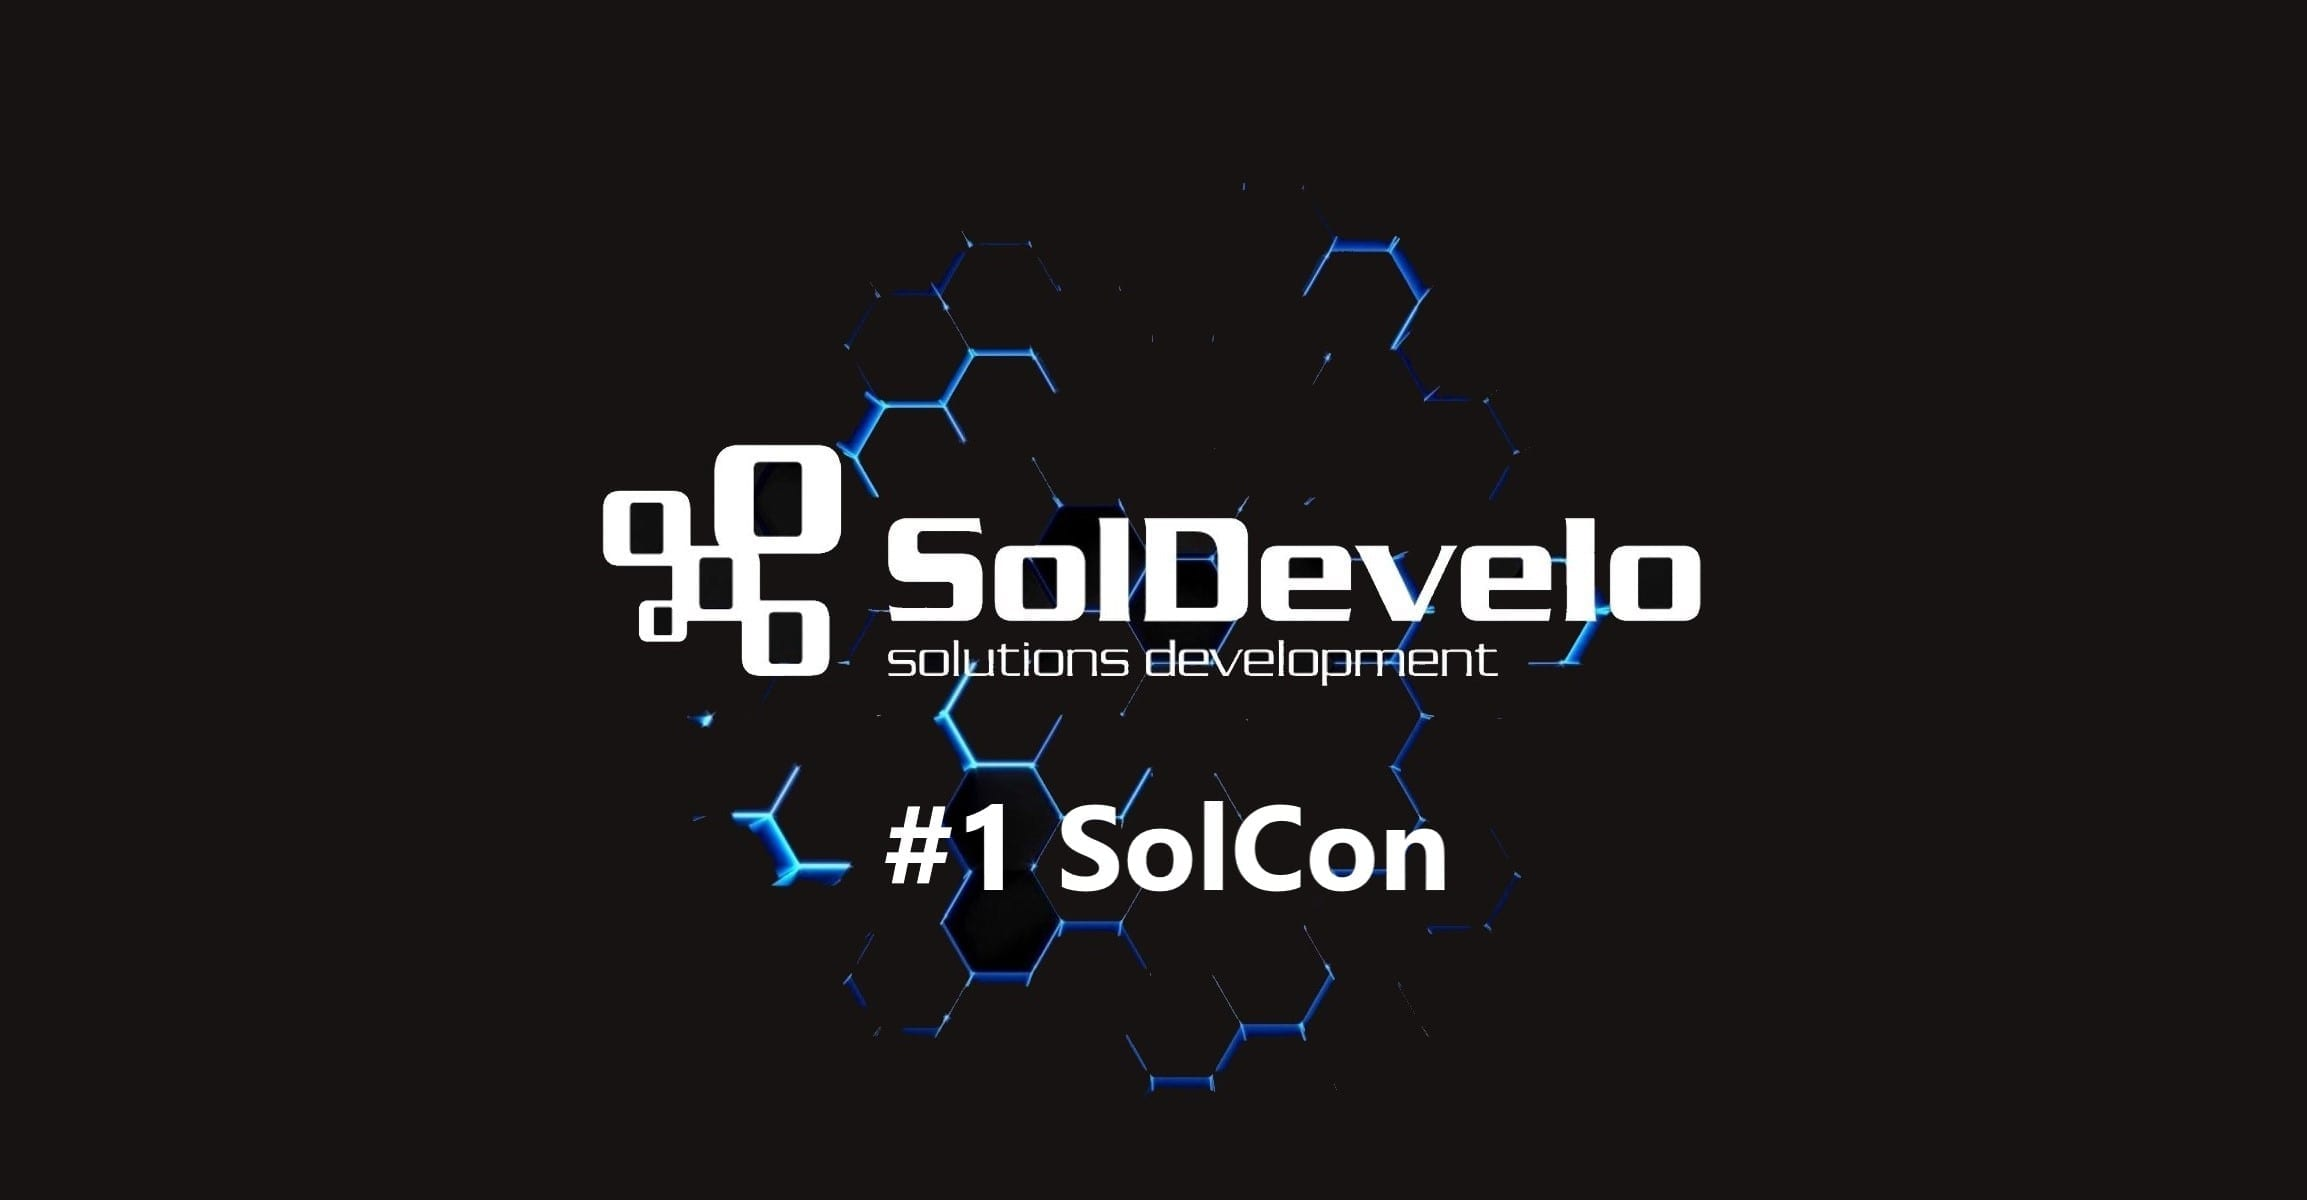 SolDevelo SolCon conference